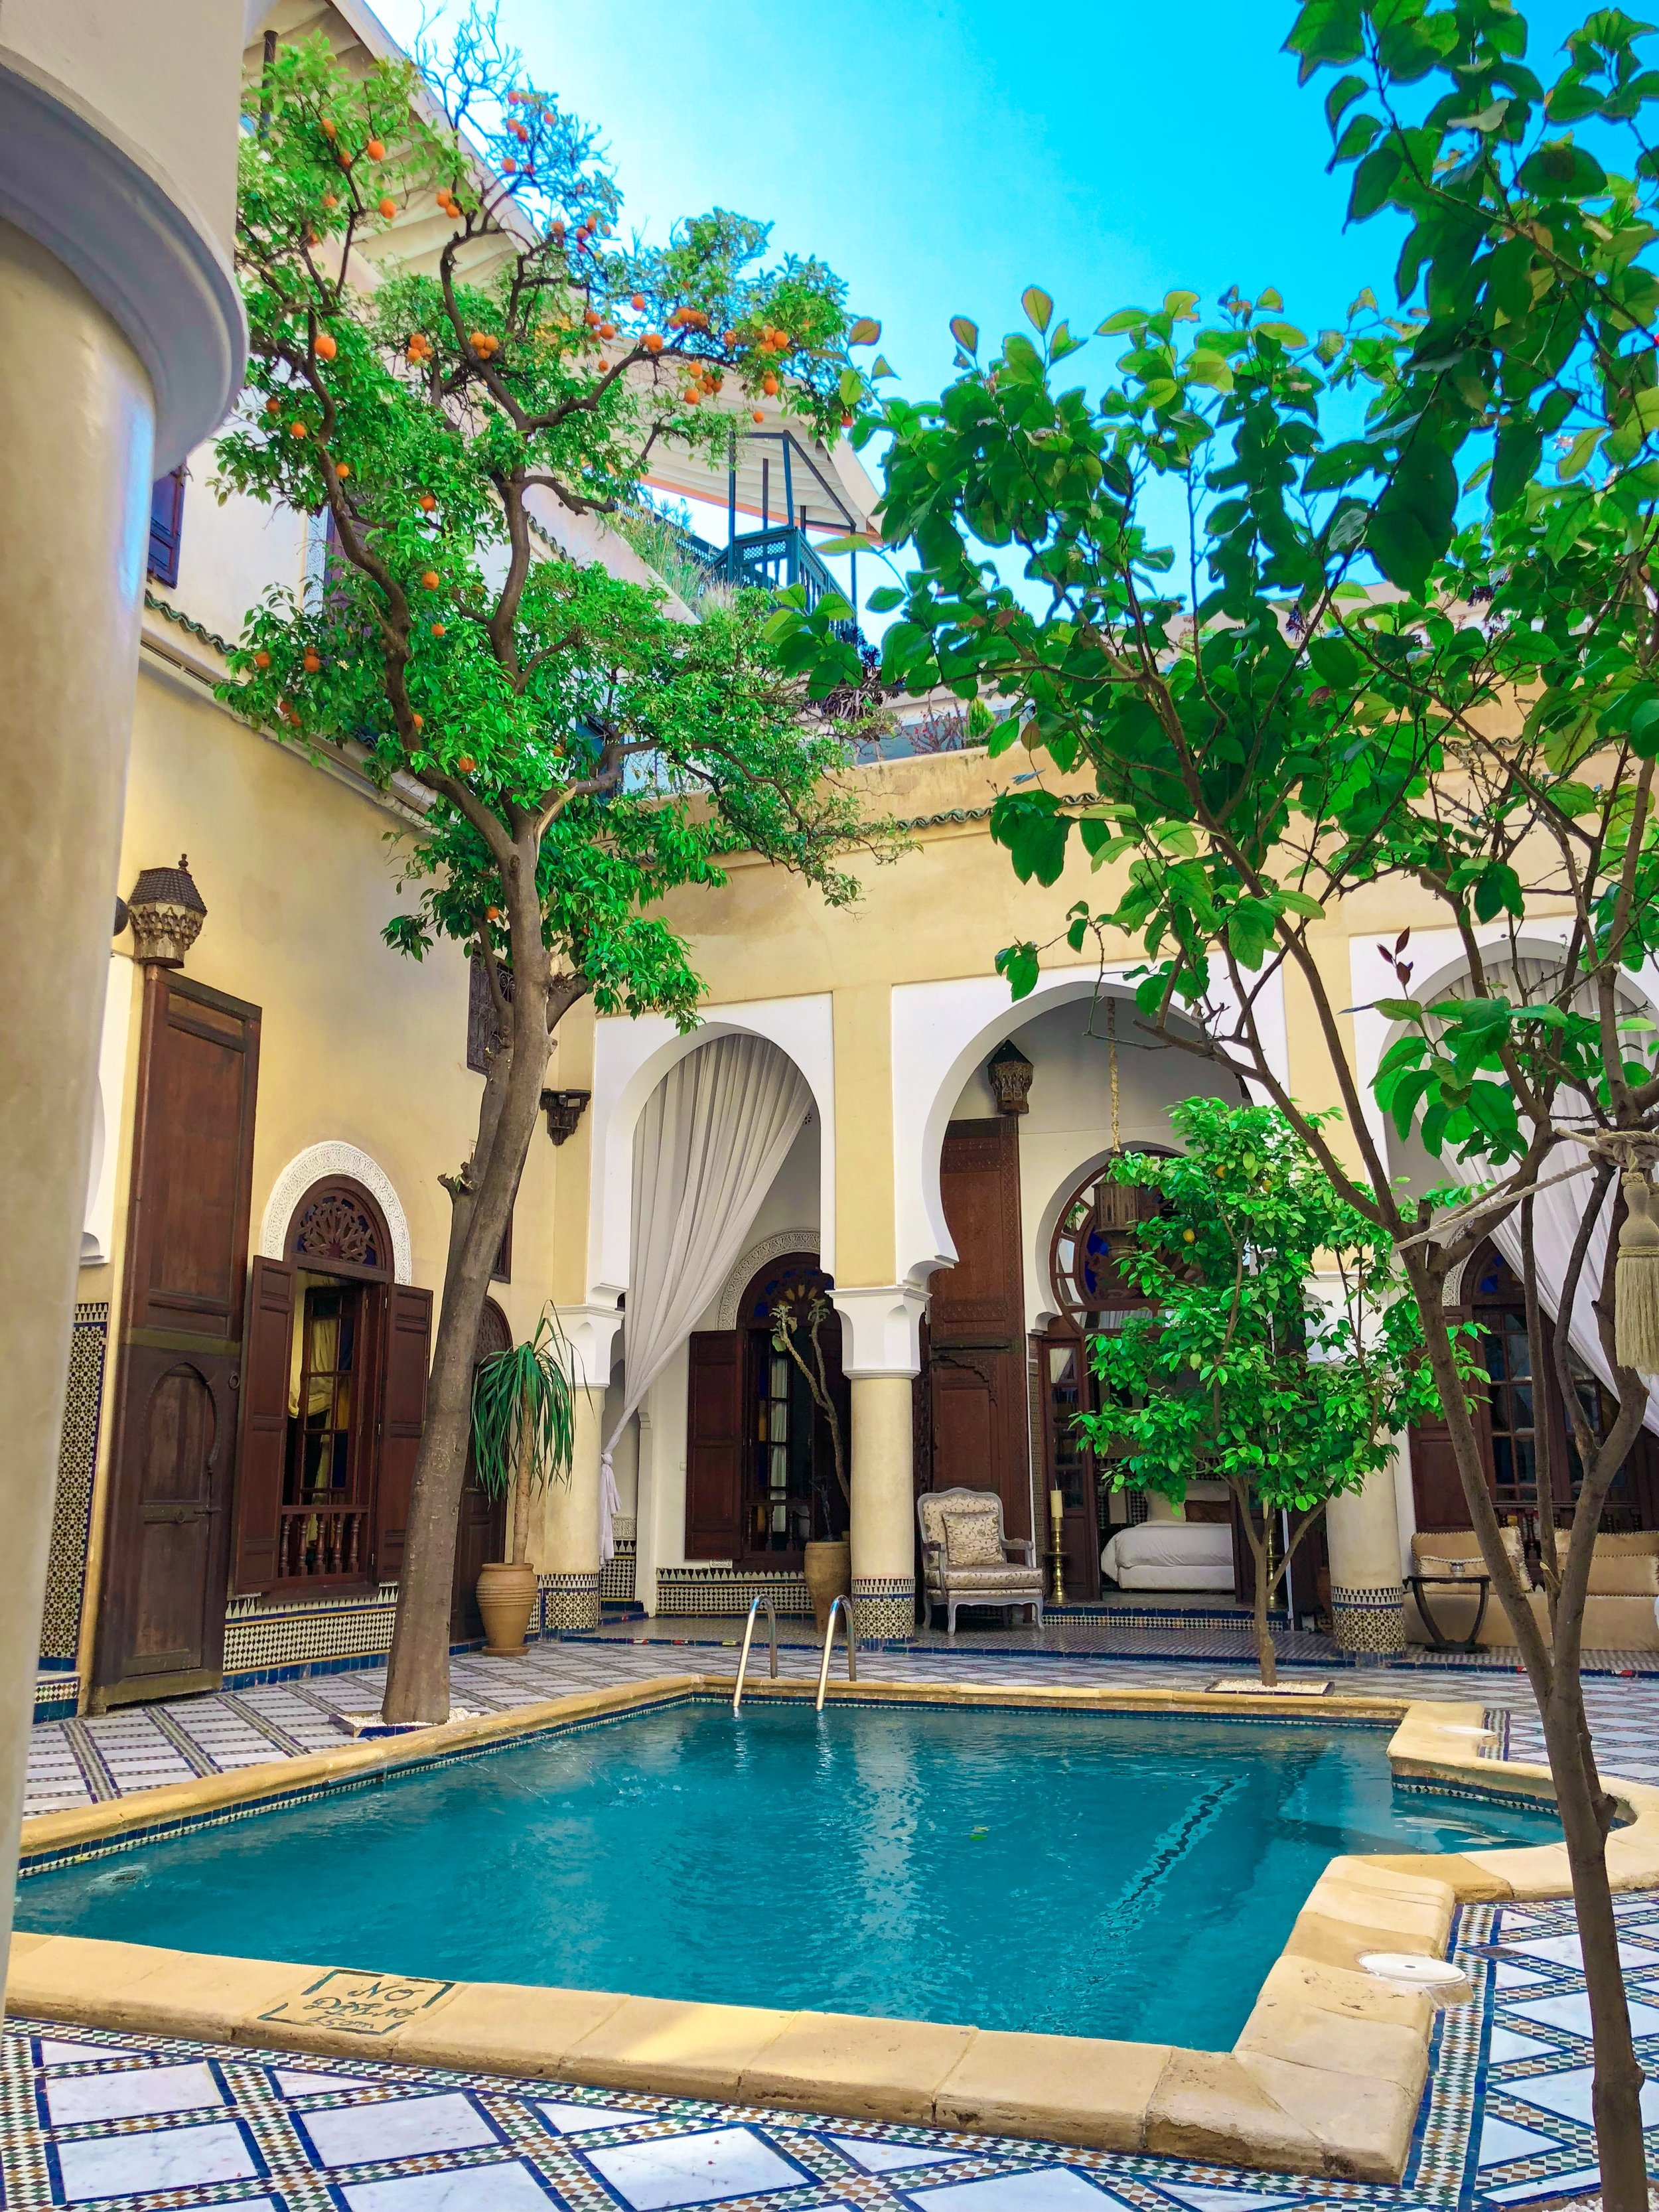 The pool in the middle of the riad in Fes